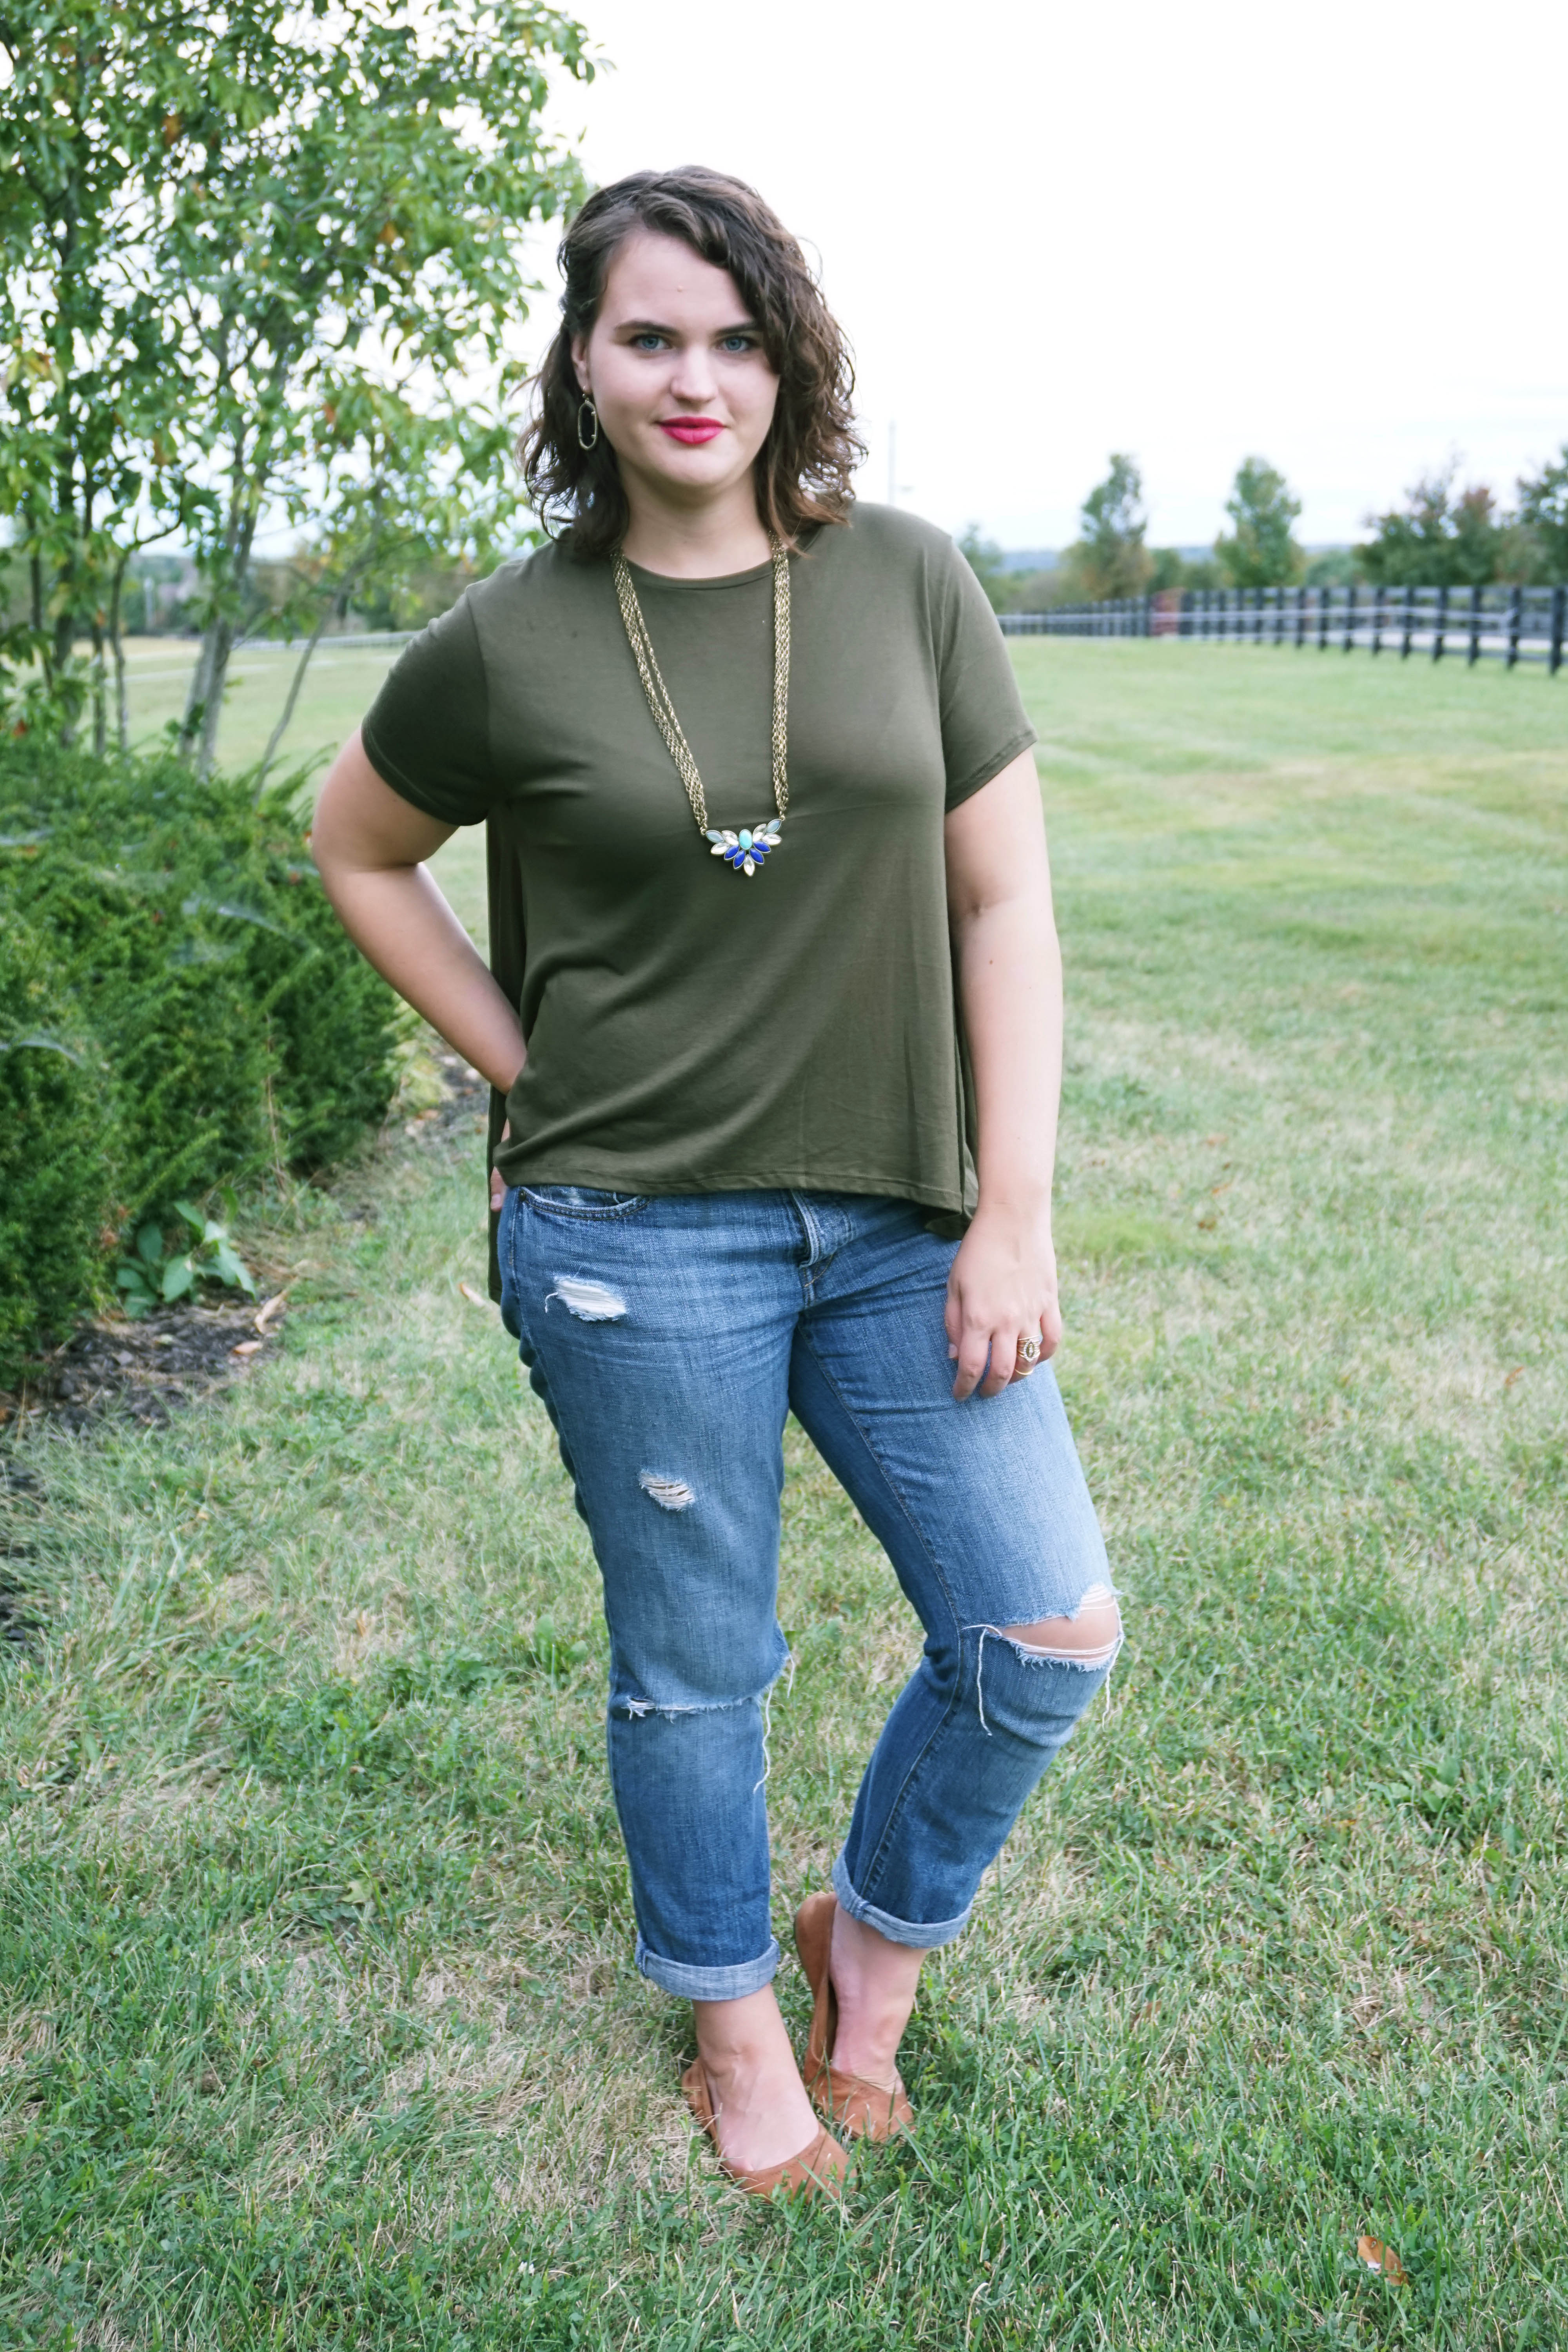 lauren allen fashion blog 9-28-15a